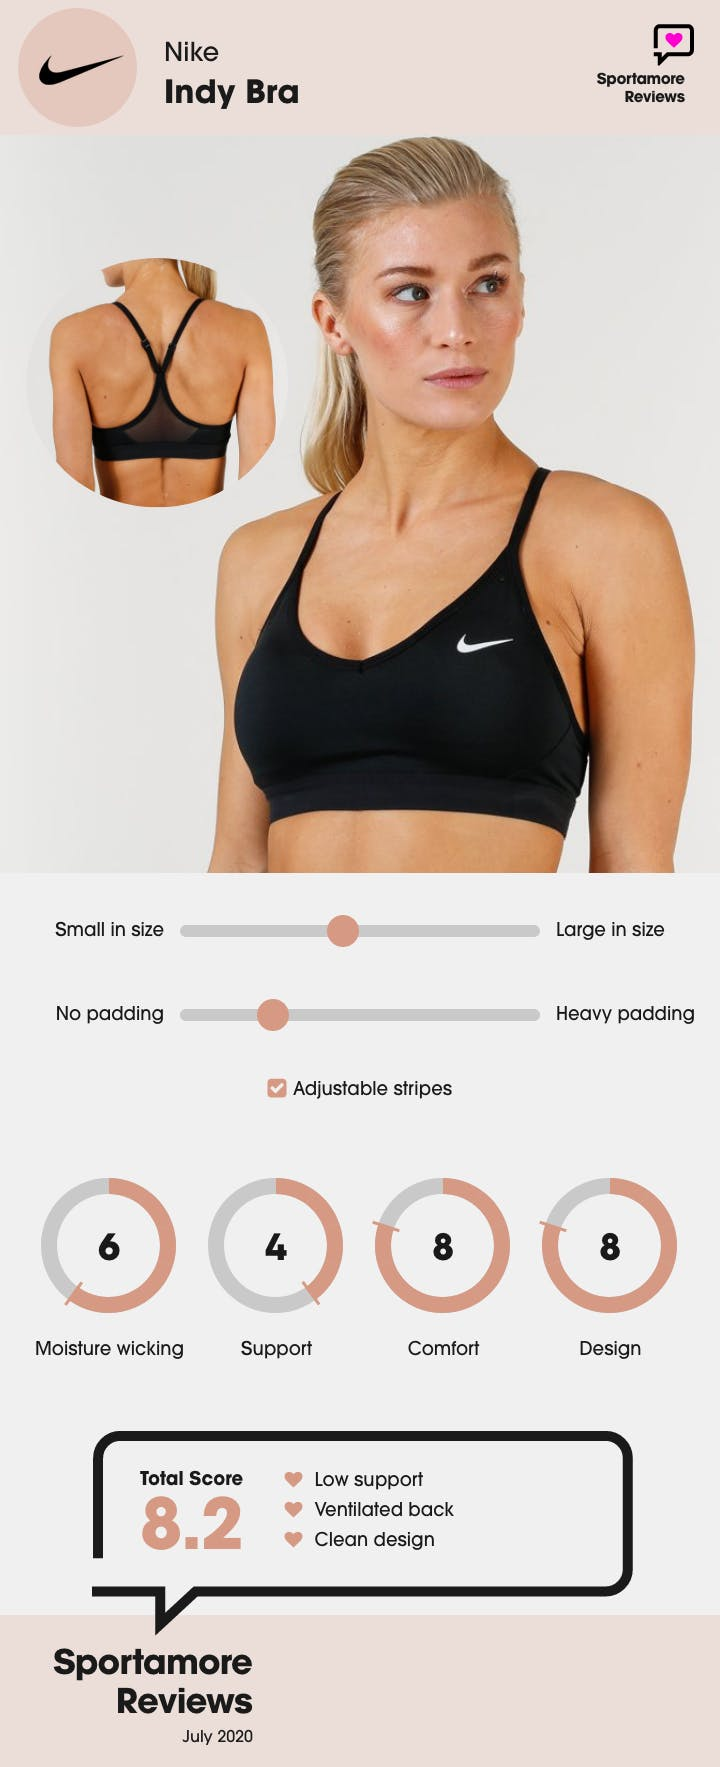 Nike Indy bra .png